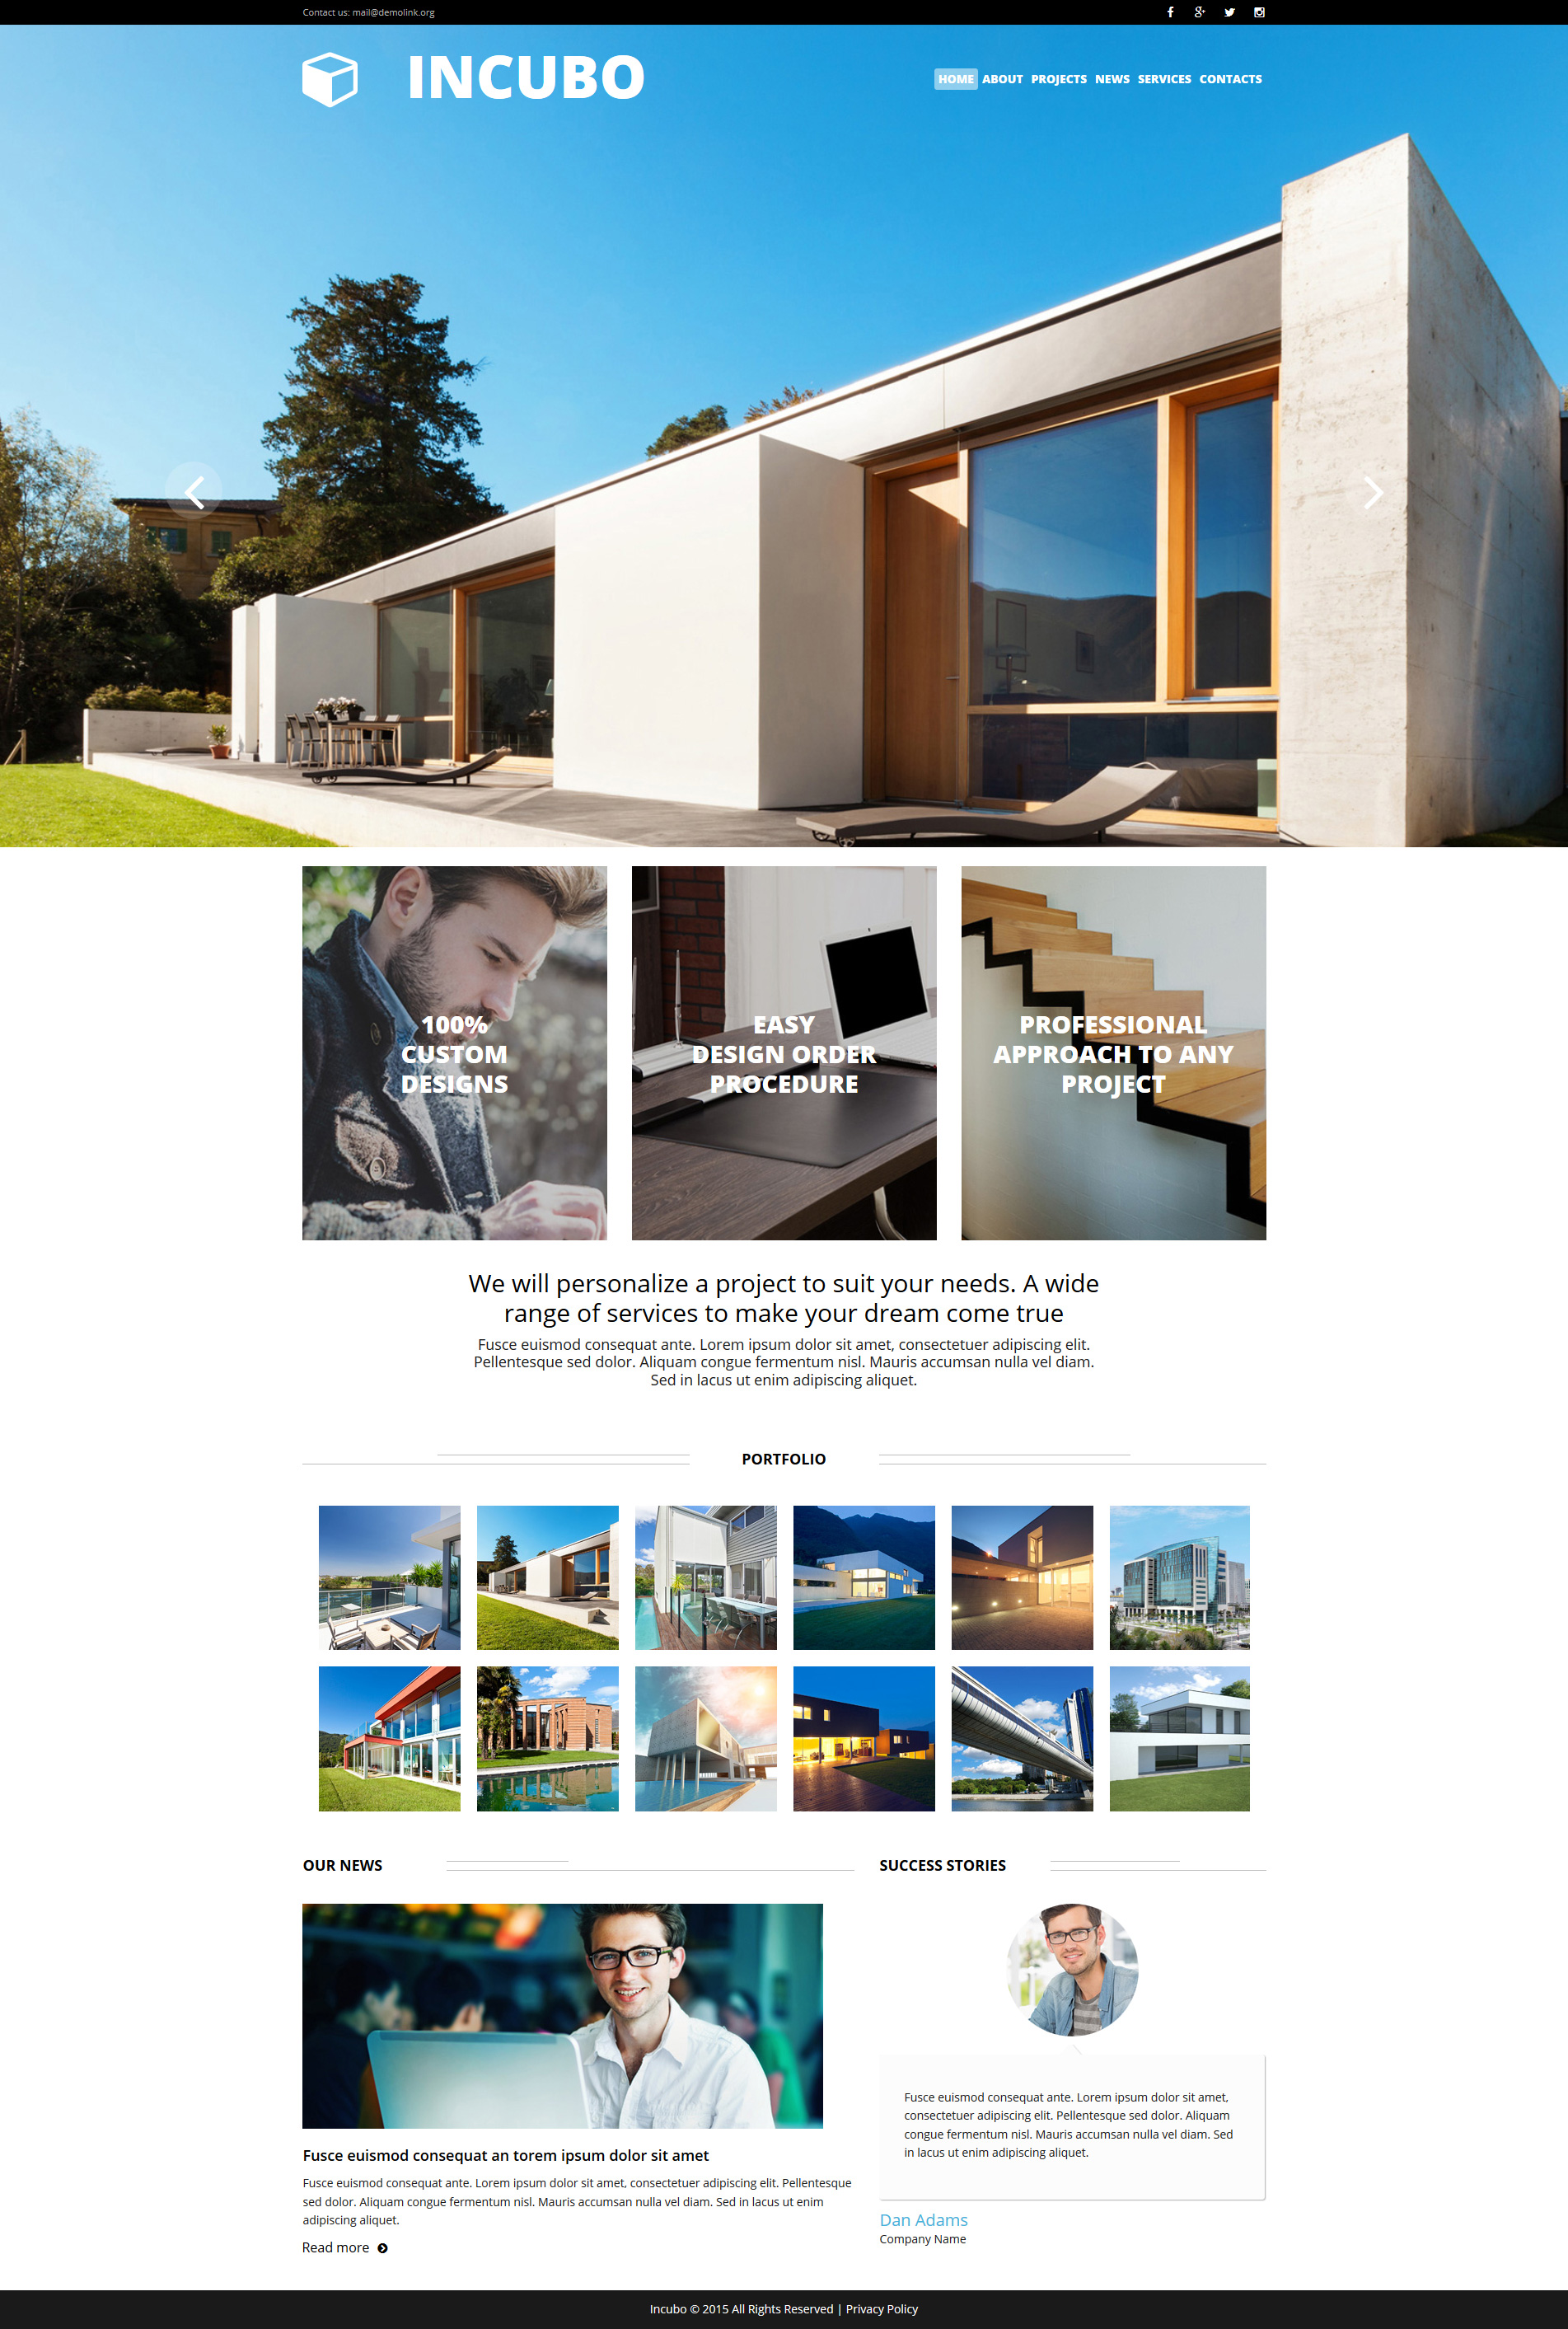 The Incubo Architecture Company Moto CMS 3 Templates Design 53734, one of the best Moto CMS 3 templates of its kind (architecture, most popular), also known as incubo architecture company Moto CMS 3 template, architectural company bureau Moto CMS 3 template, buildings Moto CMS 3 template, technology Moto CMS 3 template, innovation Moto CMS 3 template, skyscrapers Moto CMS 3 template, projects Moto CMS 3 template, constructions Moto CMS 3 template, houses Moto CMS 3 template, work Moto CMS 3 template, team Moto CMS 3 template, strategy Moto CMS 3 template, services Moto CMS 3 template, support Moto CMS 3 template, planning Moto CMS 3 template, custom design Moto CMS 3 template, enterprise Moto CMS 3 template, clients Moto CMS 3 template, partners Moto CMS 3 template, esteem and related with incubo architecture company, architectural company bureau, buildings, technology, innovation, skyscrapers, projects, constructions, houses, work, team, strategy, services, support, planning, custom design, enterprise, clients, partners, esteem, etc.